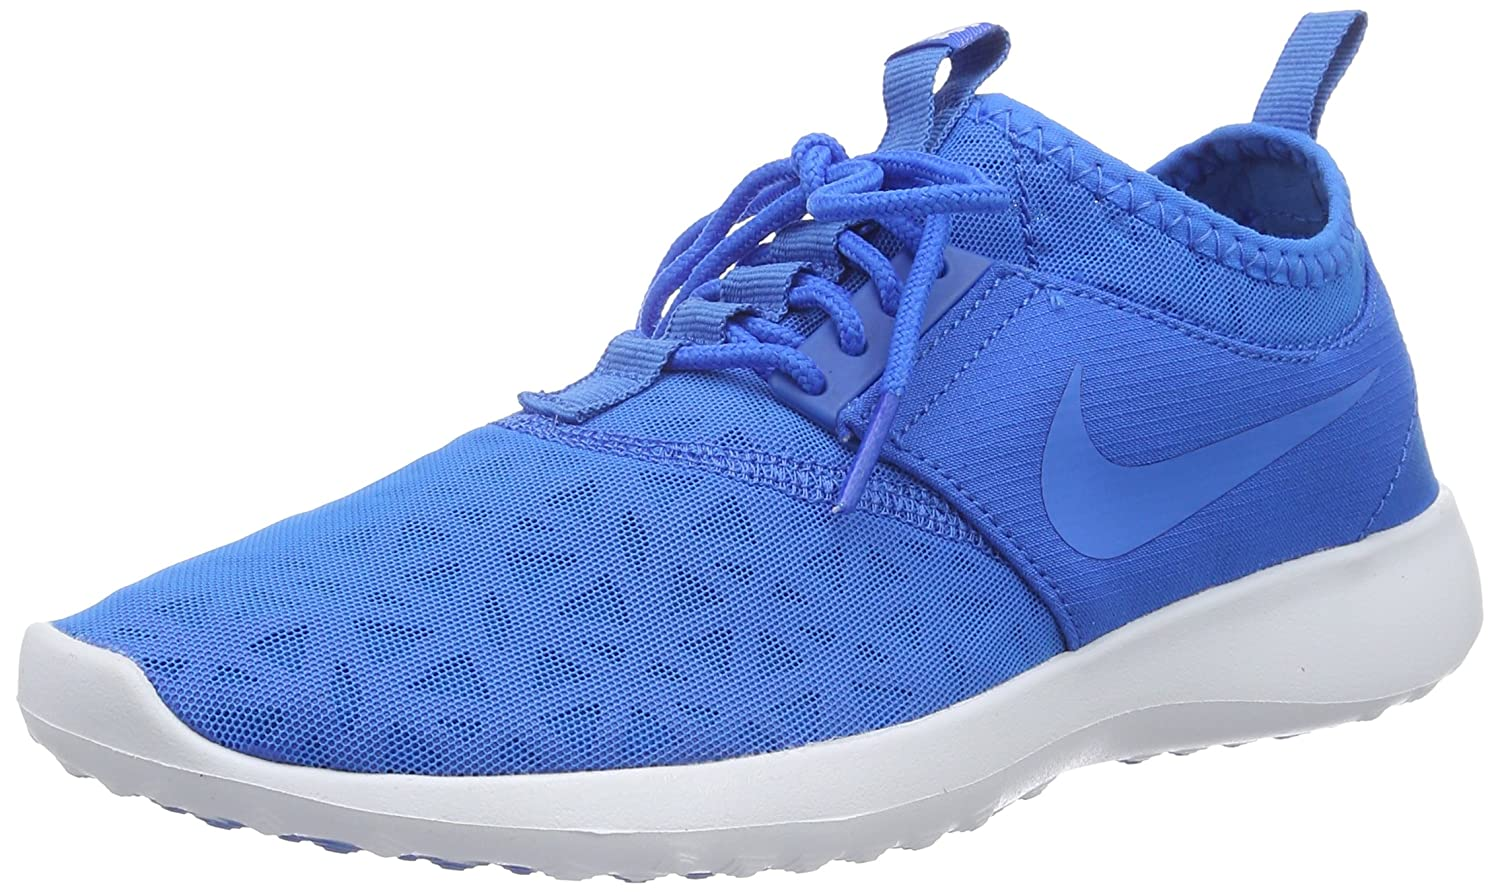 NIKE Women's Juvenate Running Shoe B01F9F4WAE 9 B(M) US|Photo Blue/Photo Blue/White